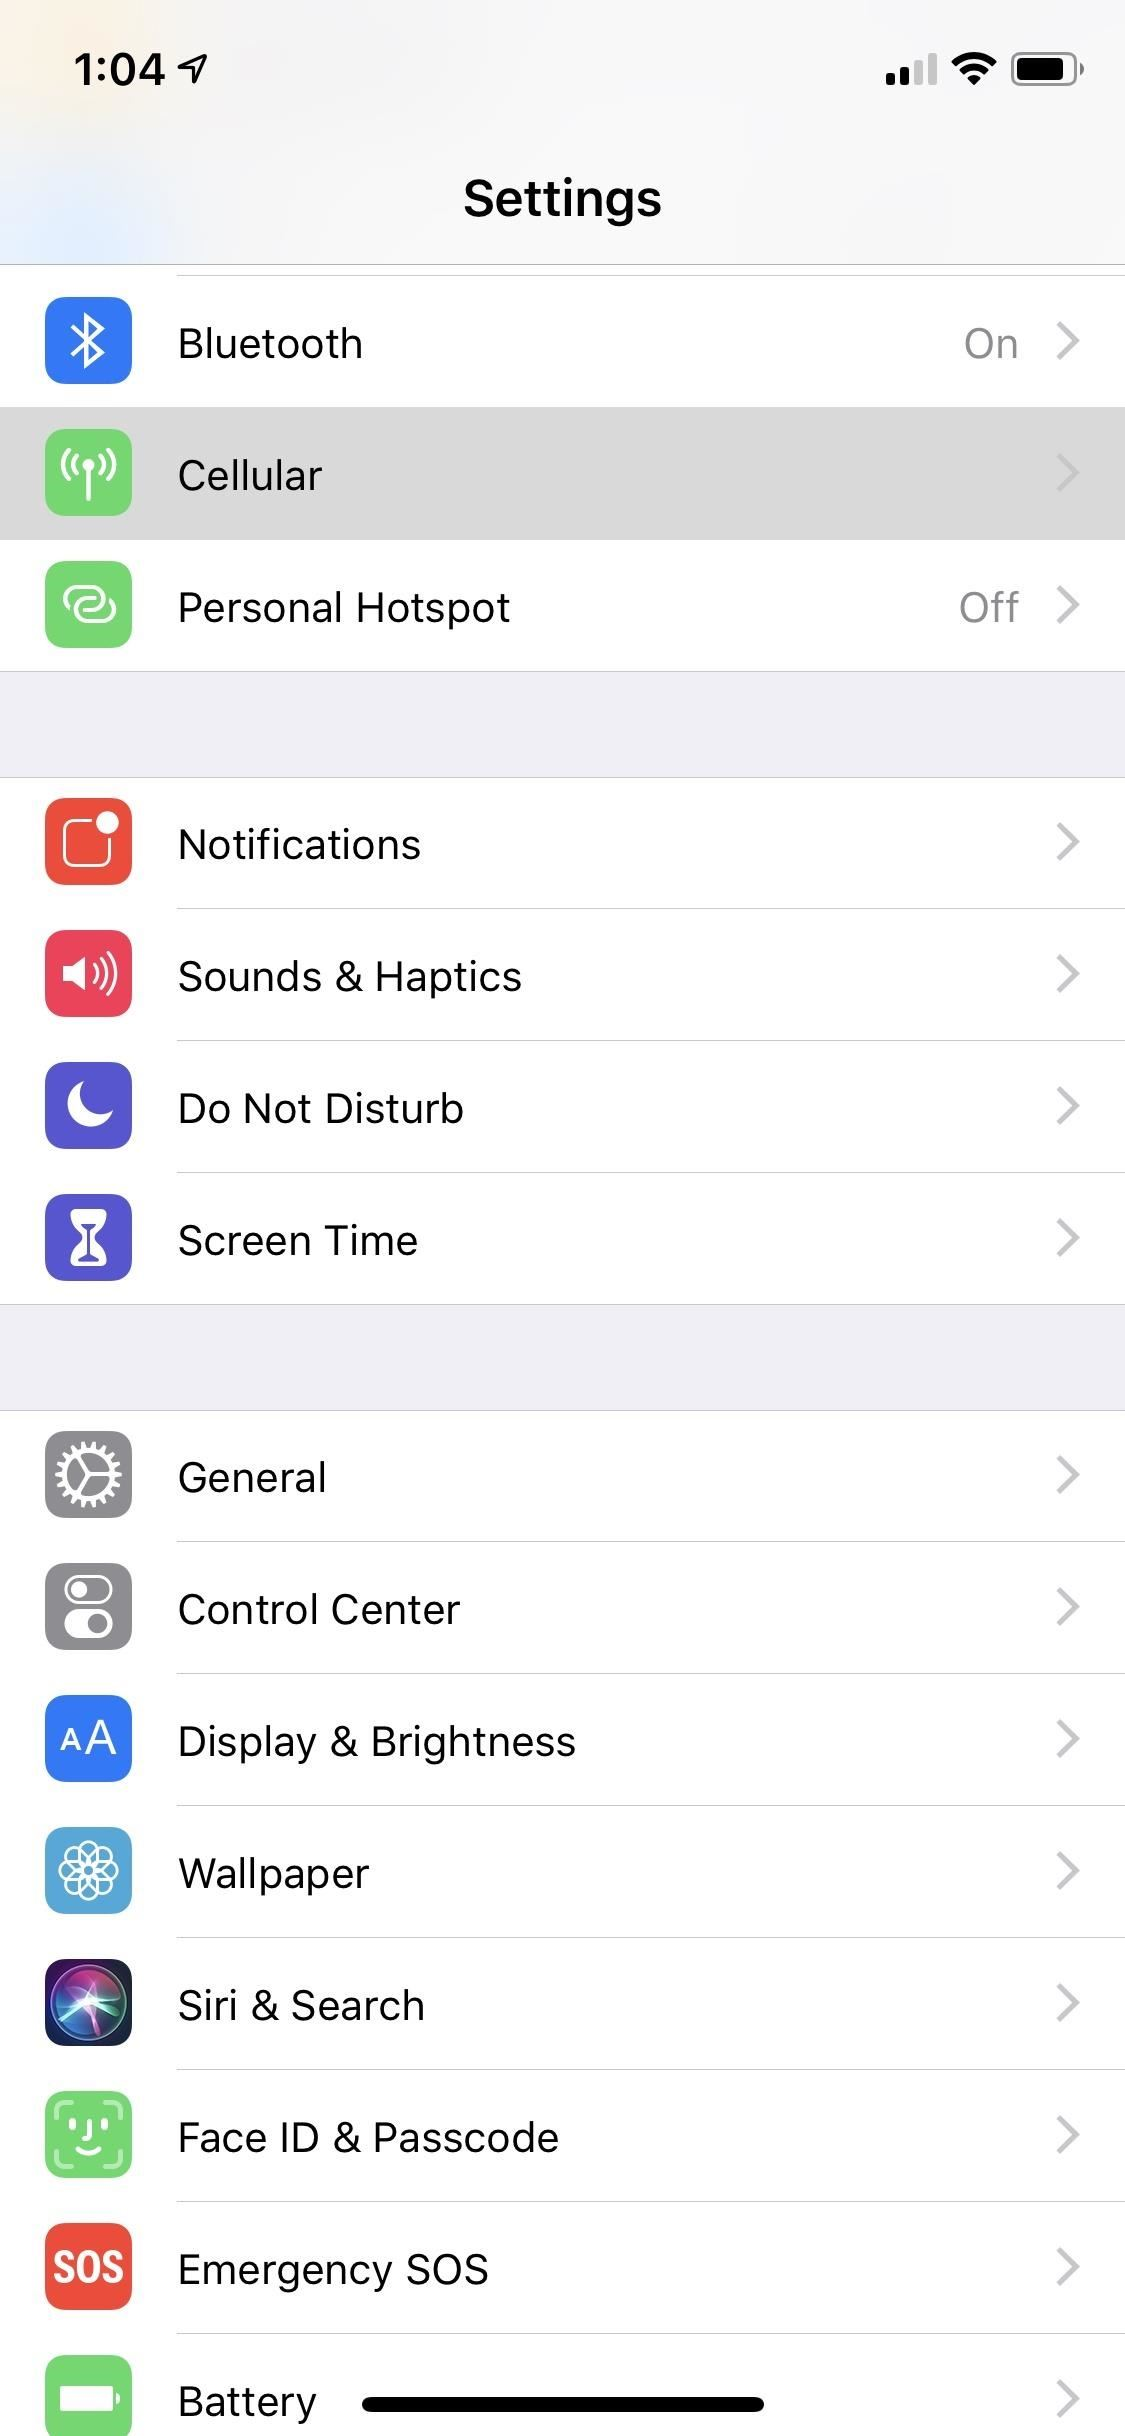 79 Cool New iOS 12 Features You Didn't Know About